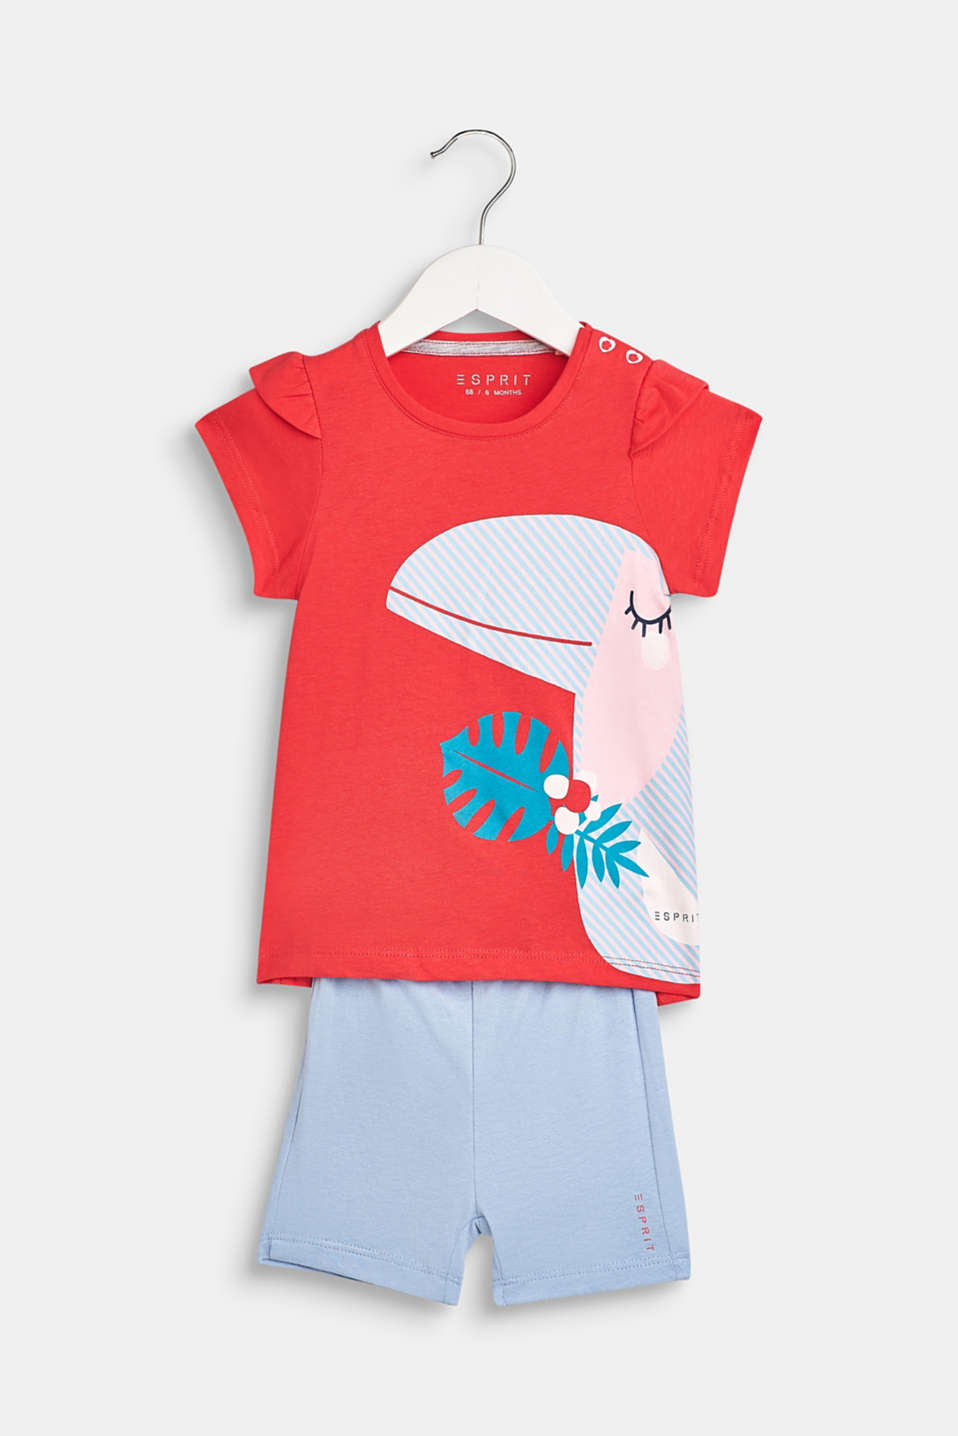 Esprit - T-shirt and shorts set, 100% cotton